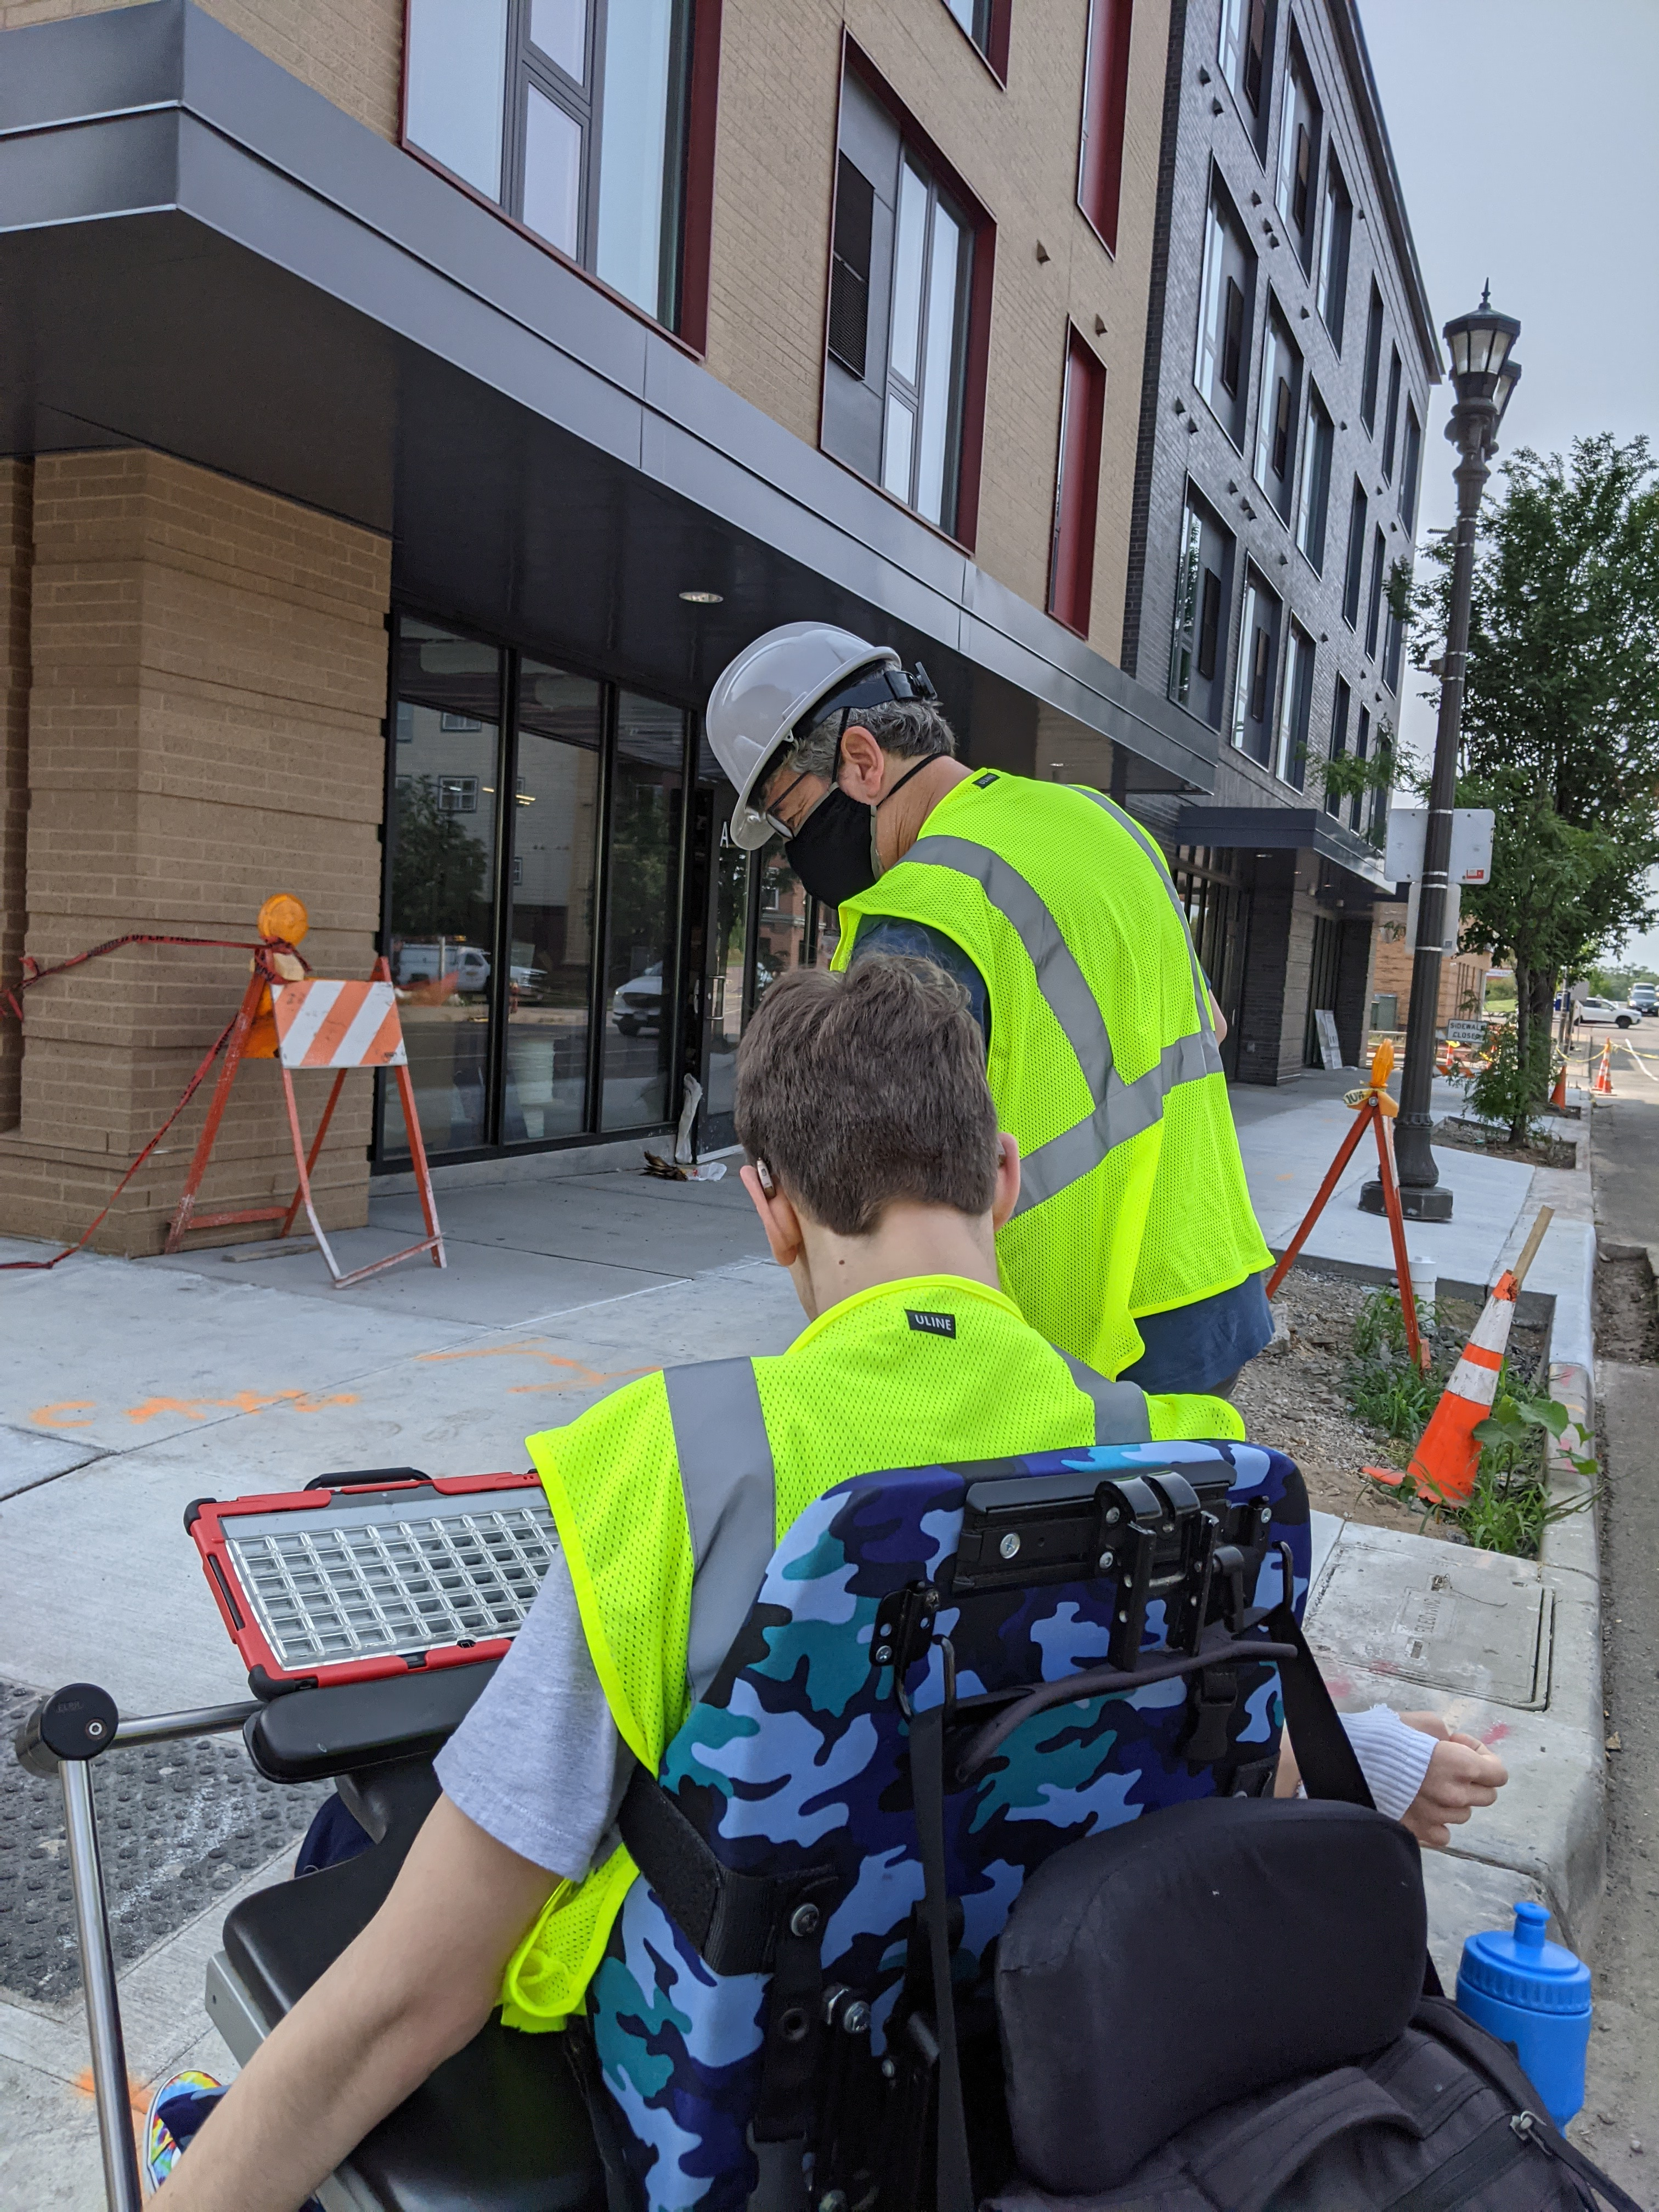 Back of masked man with hard hat and yellow vest, back of young man in wheelchair with yellow vest on, apartment building, construction cones